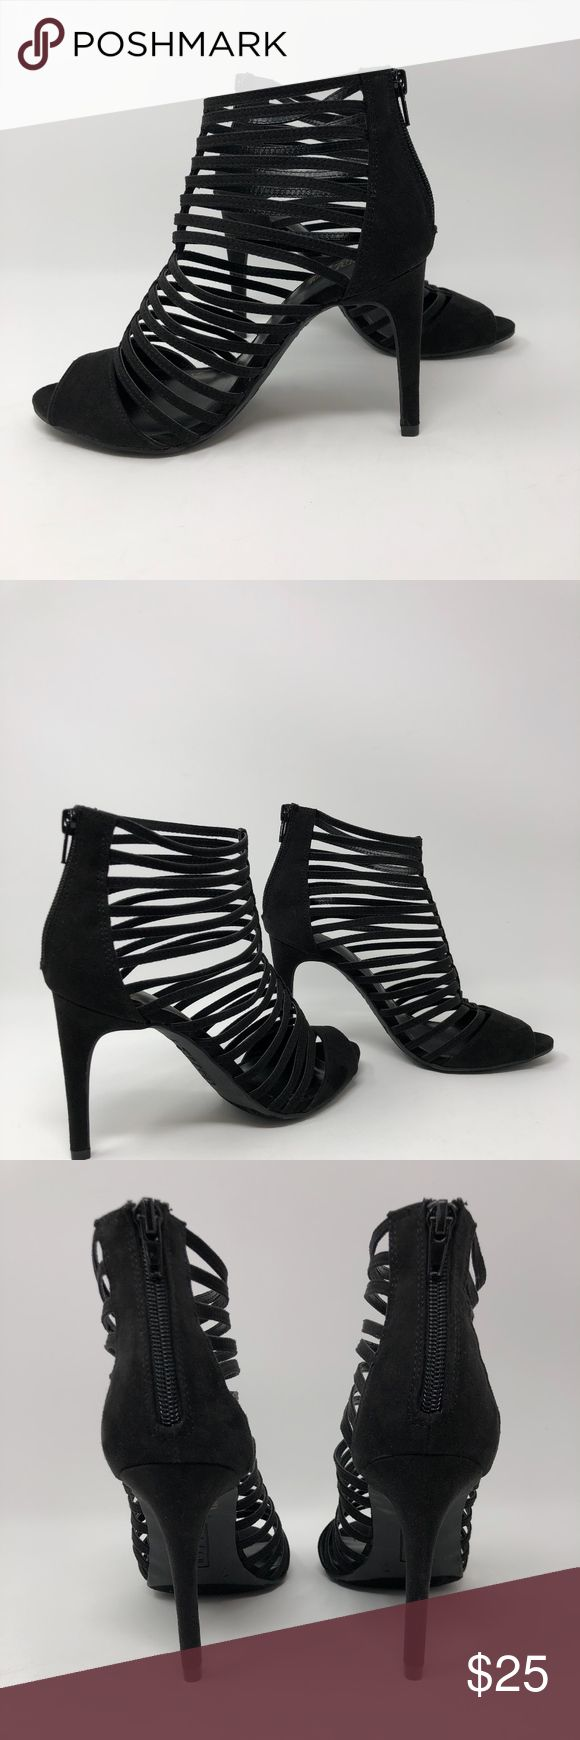 """Brash Black Open Toe Strappy Caged Heels Sandals Brash Black Open Toe Strappy Caged Heels Sandals  Sz 7  Zipper back closure Faux Suede Rubber sole 4"""" inch heel  Great condition and very cute  Shows slight signs of wear on the soles as shown on photos.  ***Please check all pics to properly assess the condition  ***There is no box. The shoes will either be bubbled wrapped or sent in an old shoe box of mine. Brash Shoes Heels"""